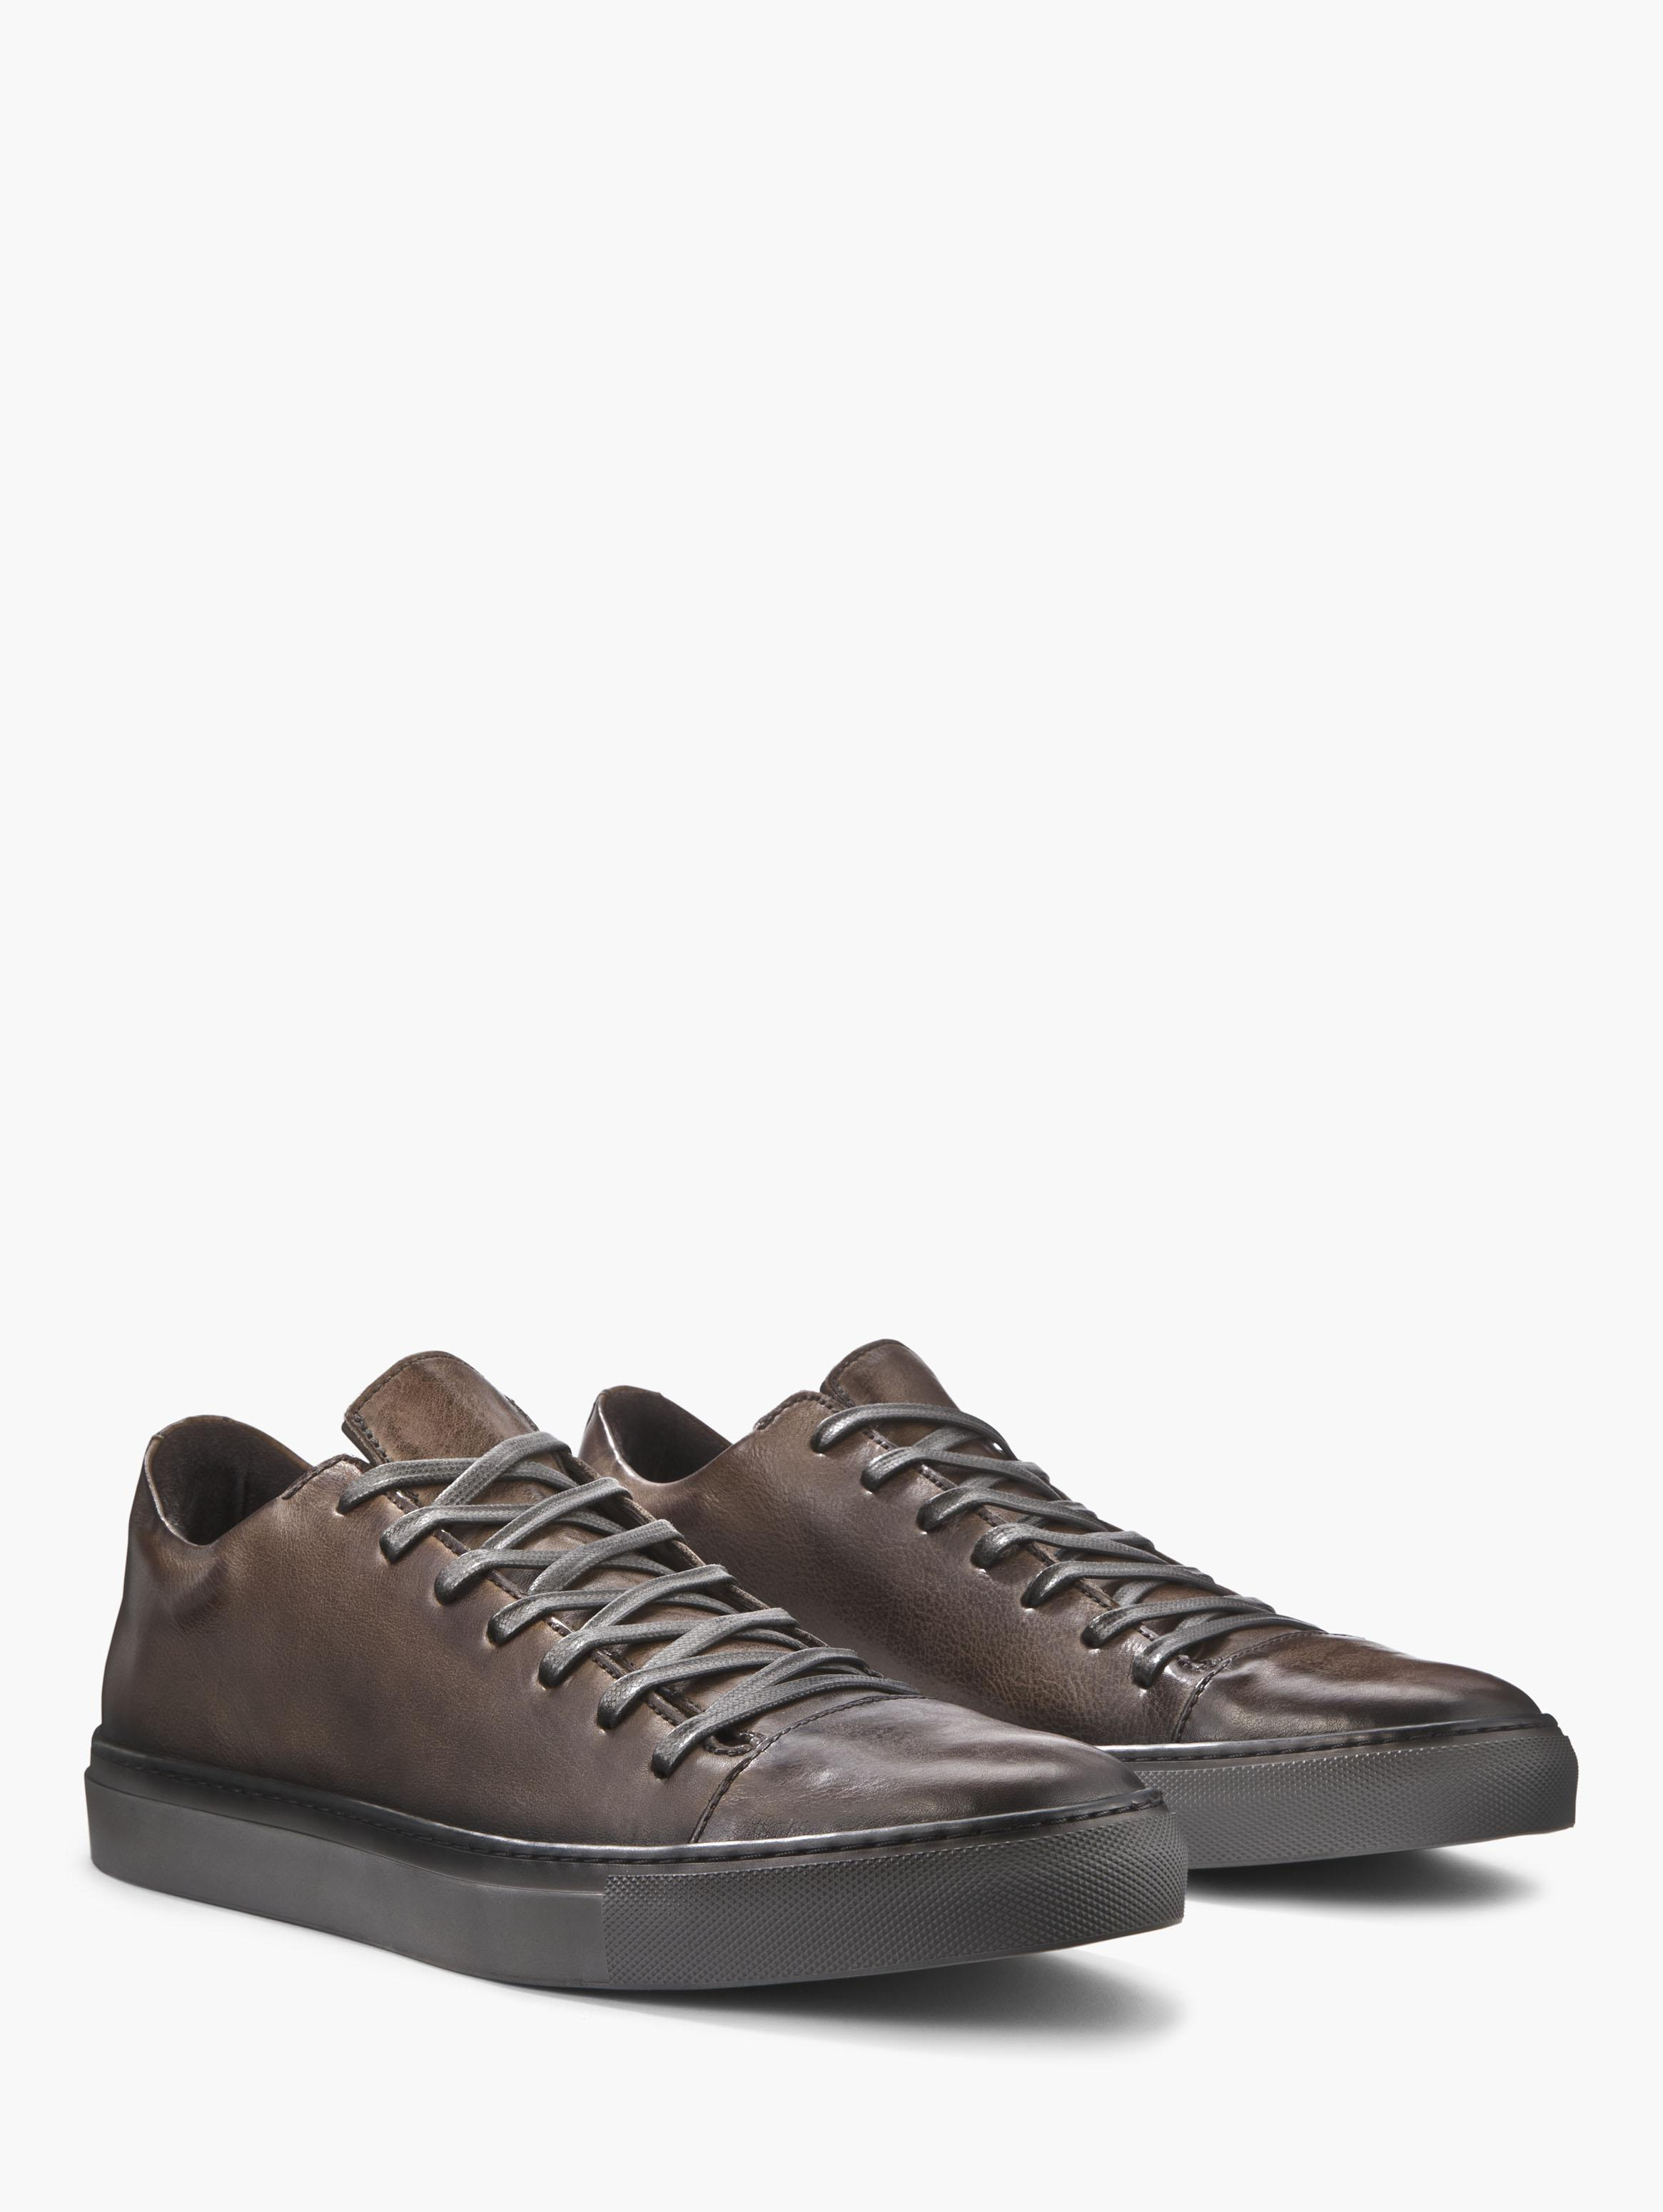 Men S Shoes John Varvatos